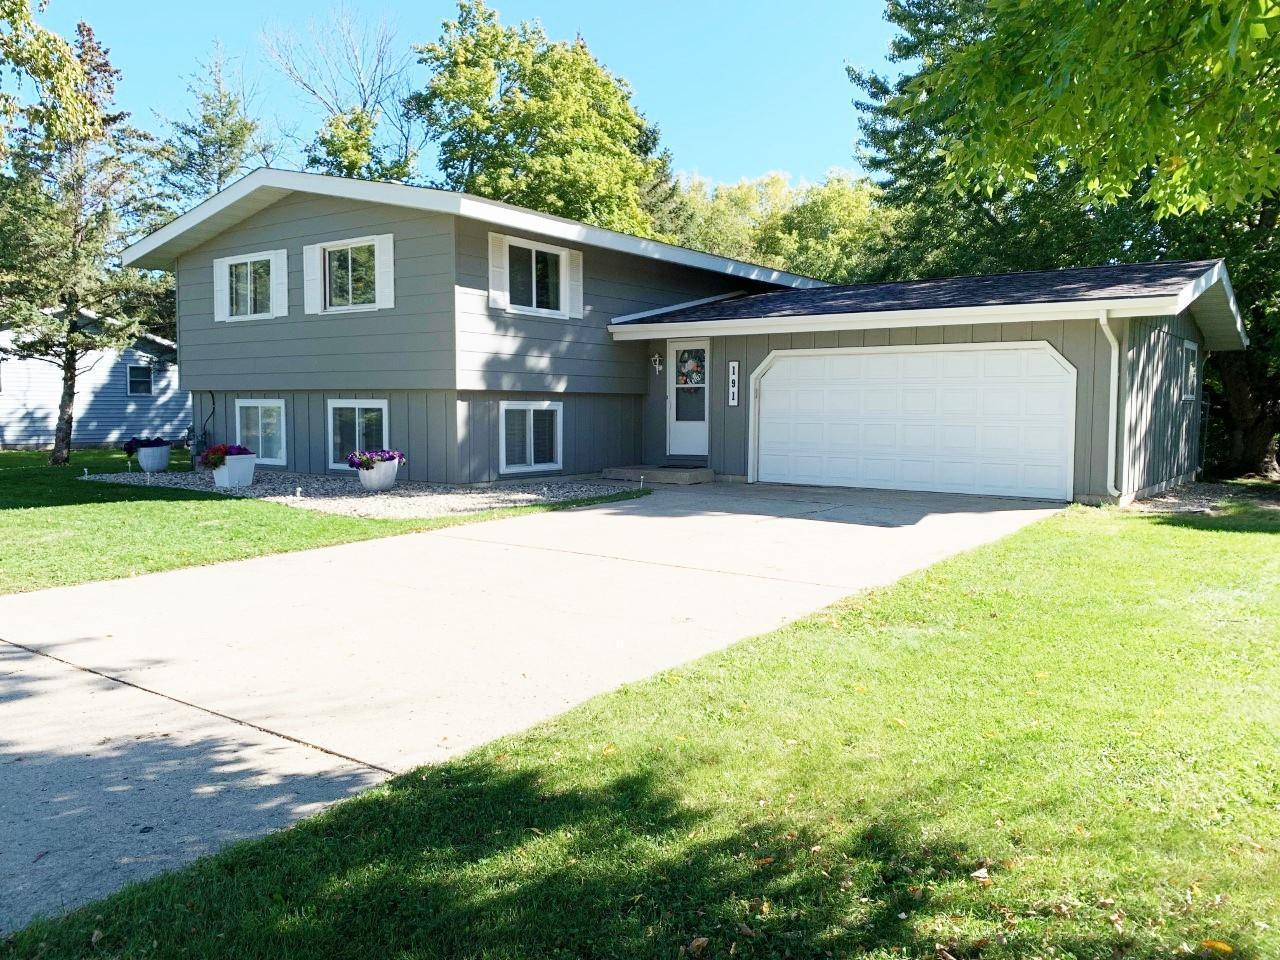 Welcome to Lakeview Drive, Within Walking Distance of Shopping, Parks, Trails, Lakes & More!! This Property is About .75 of an Acre Between the Two Parcels With A Great Wooded Area in the Back Full of Wildlife That Adjoins DNR Property. Inside The Home, The Upper Level Hosts The Kitchen, Dining, And Spacious Living Room, Along With 2 Bedrooms and A Bathroom. Great Vaulted Ceilings Throughout! You'll Find Another Bedroom, Bathroom, Laundry and Large Family Room in the Lower Level. Could This Be Your New Home? Don't Wait, Call Today!!